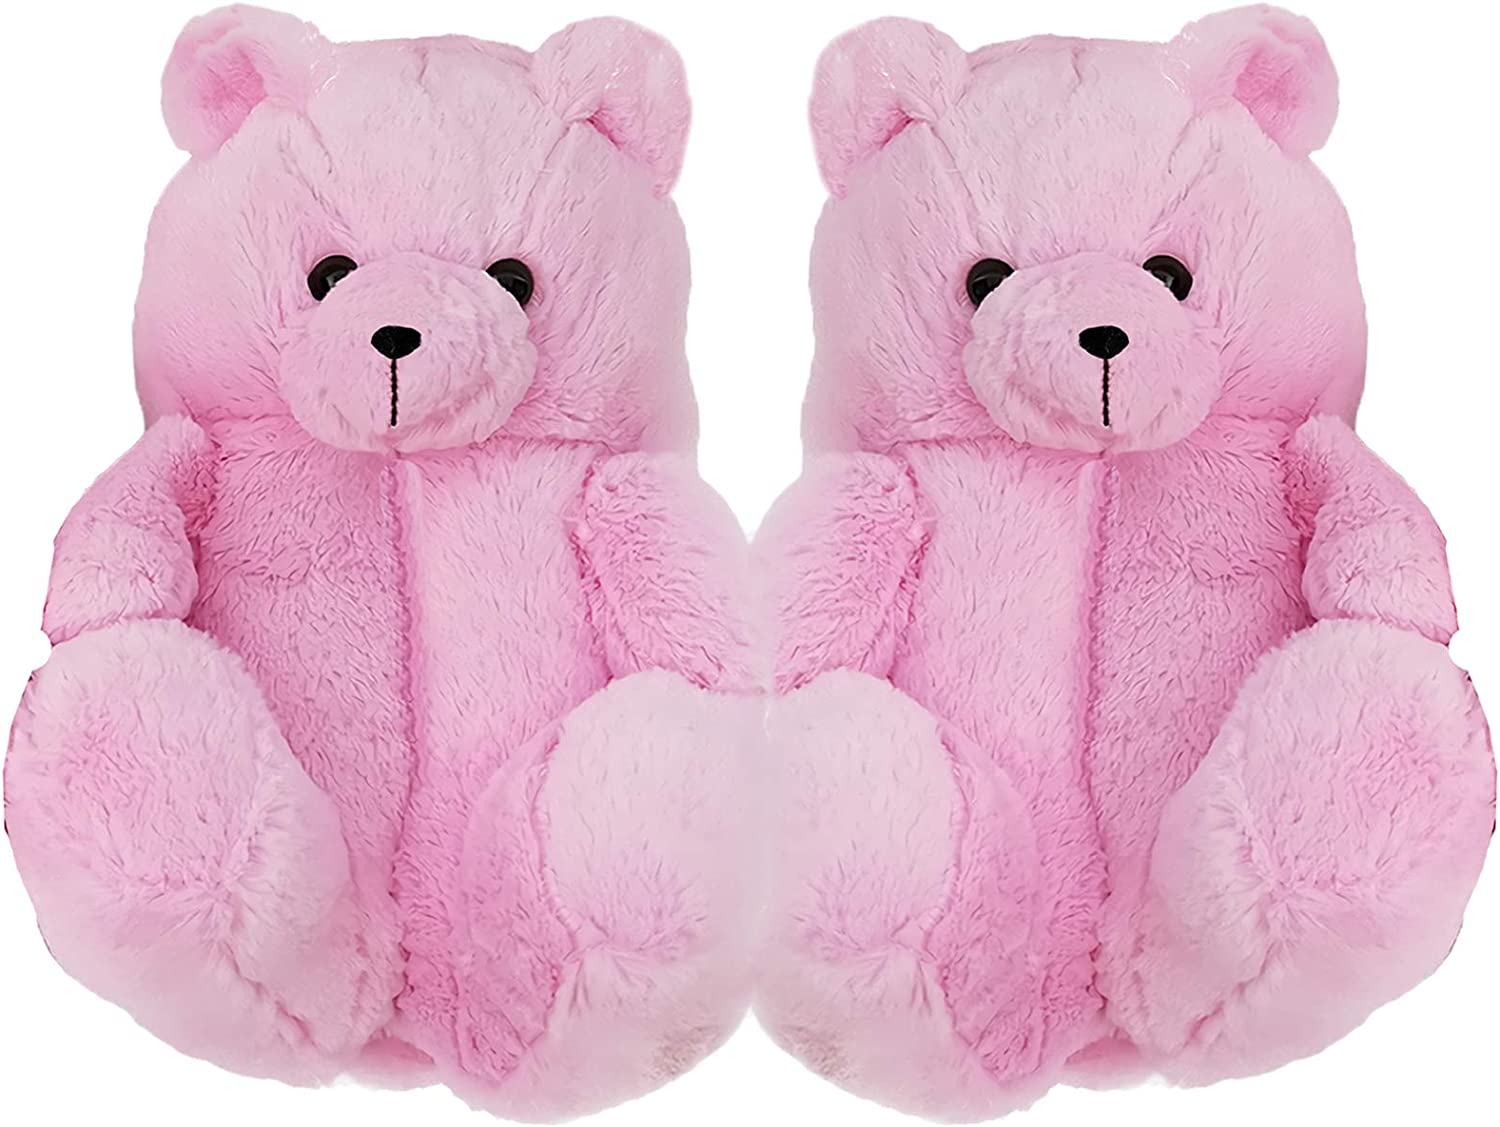 Teddy Bear Slippers for Women, Home Indoor Soft Plush Anti-Slip Washable Animal Slipper, Cute Furry Winter Warm Faux Fur Big Cartoon Bear Slides Shoes for Kids and Adults